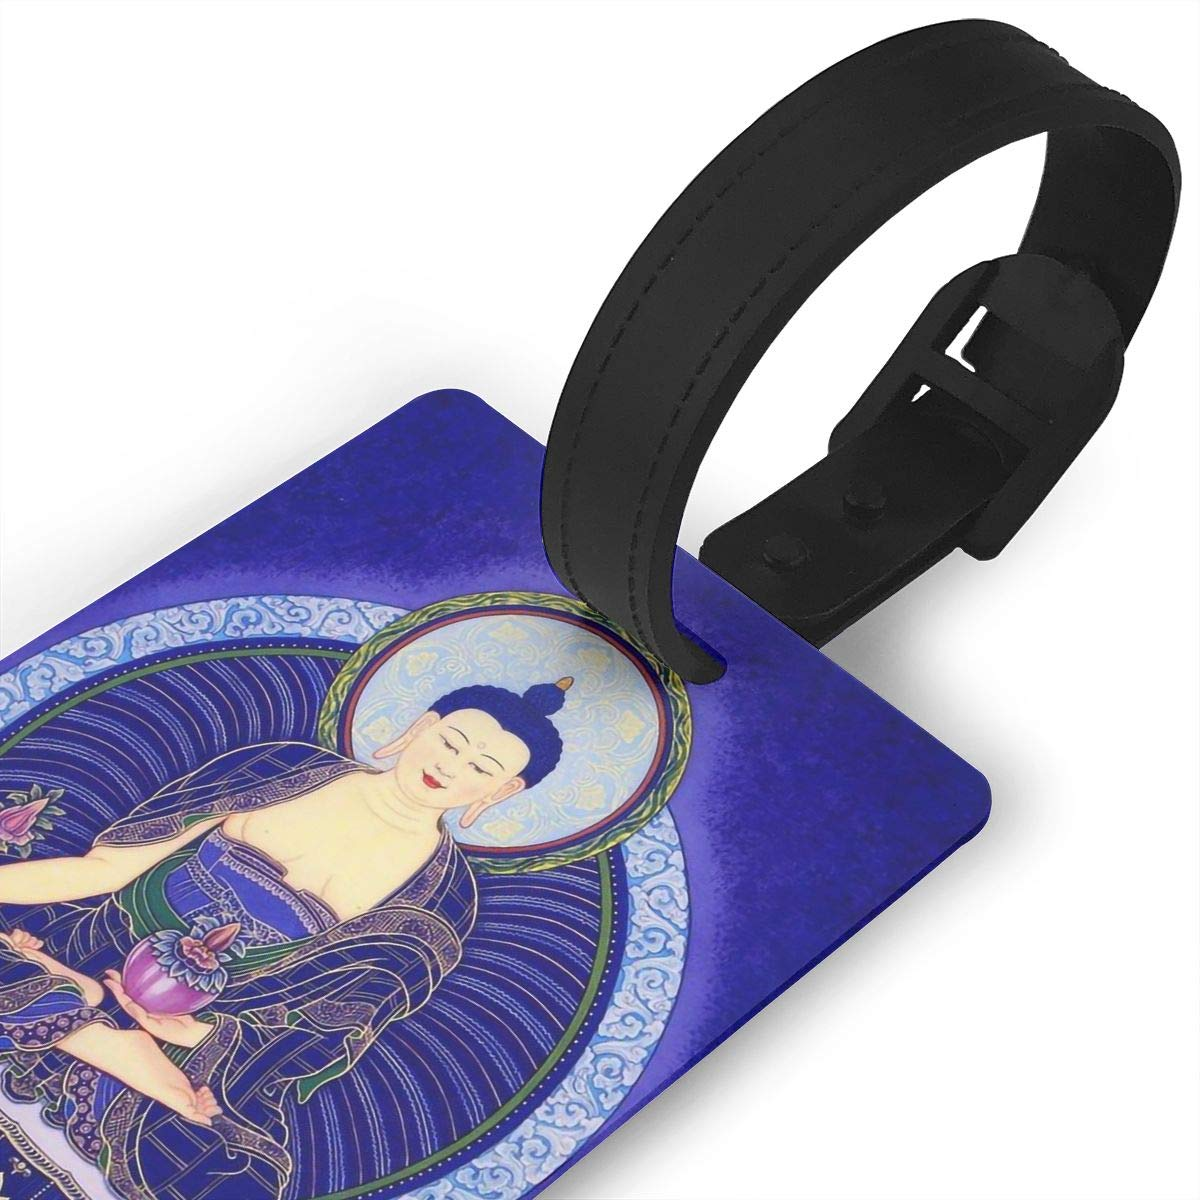 2 Pack Luggage Tags Buddhism Handbag Tag For Travel Tags Accessories